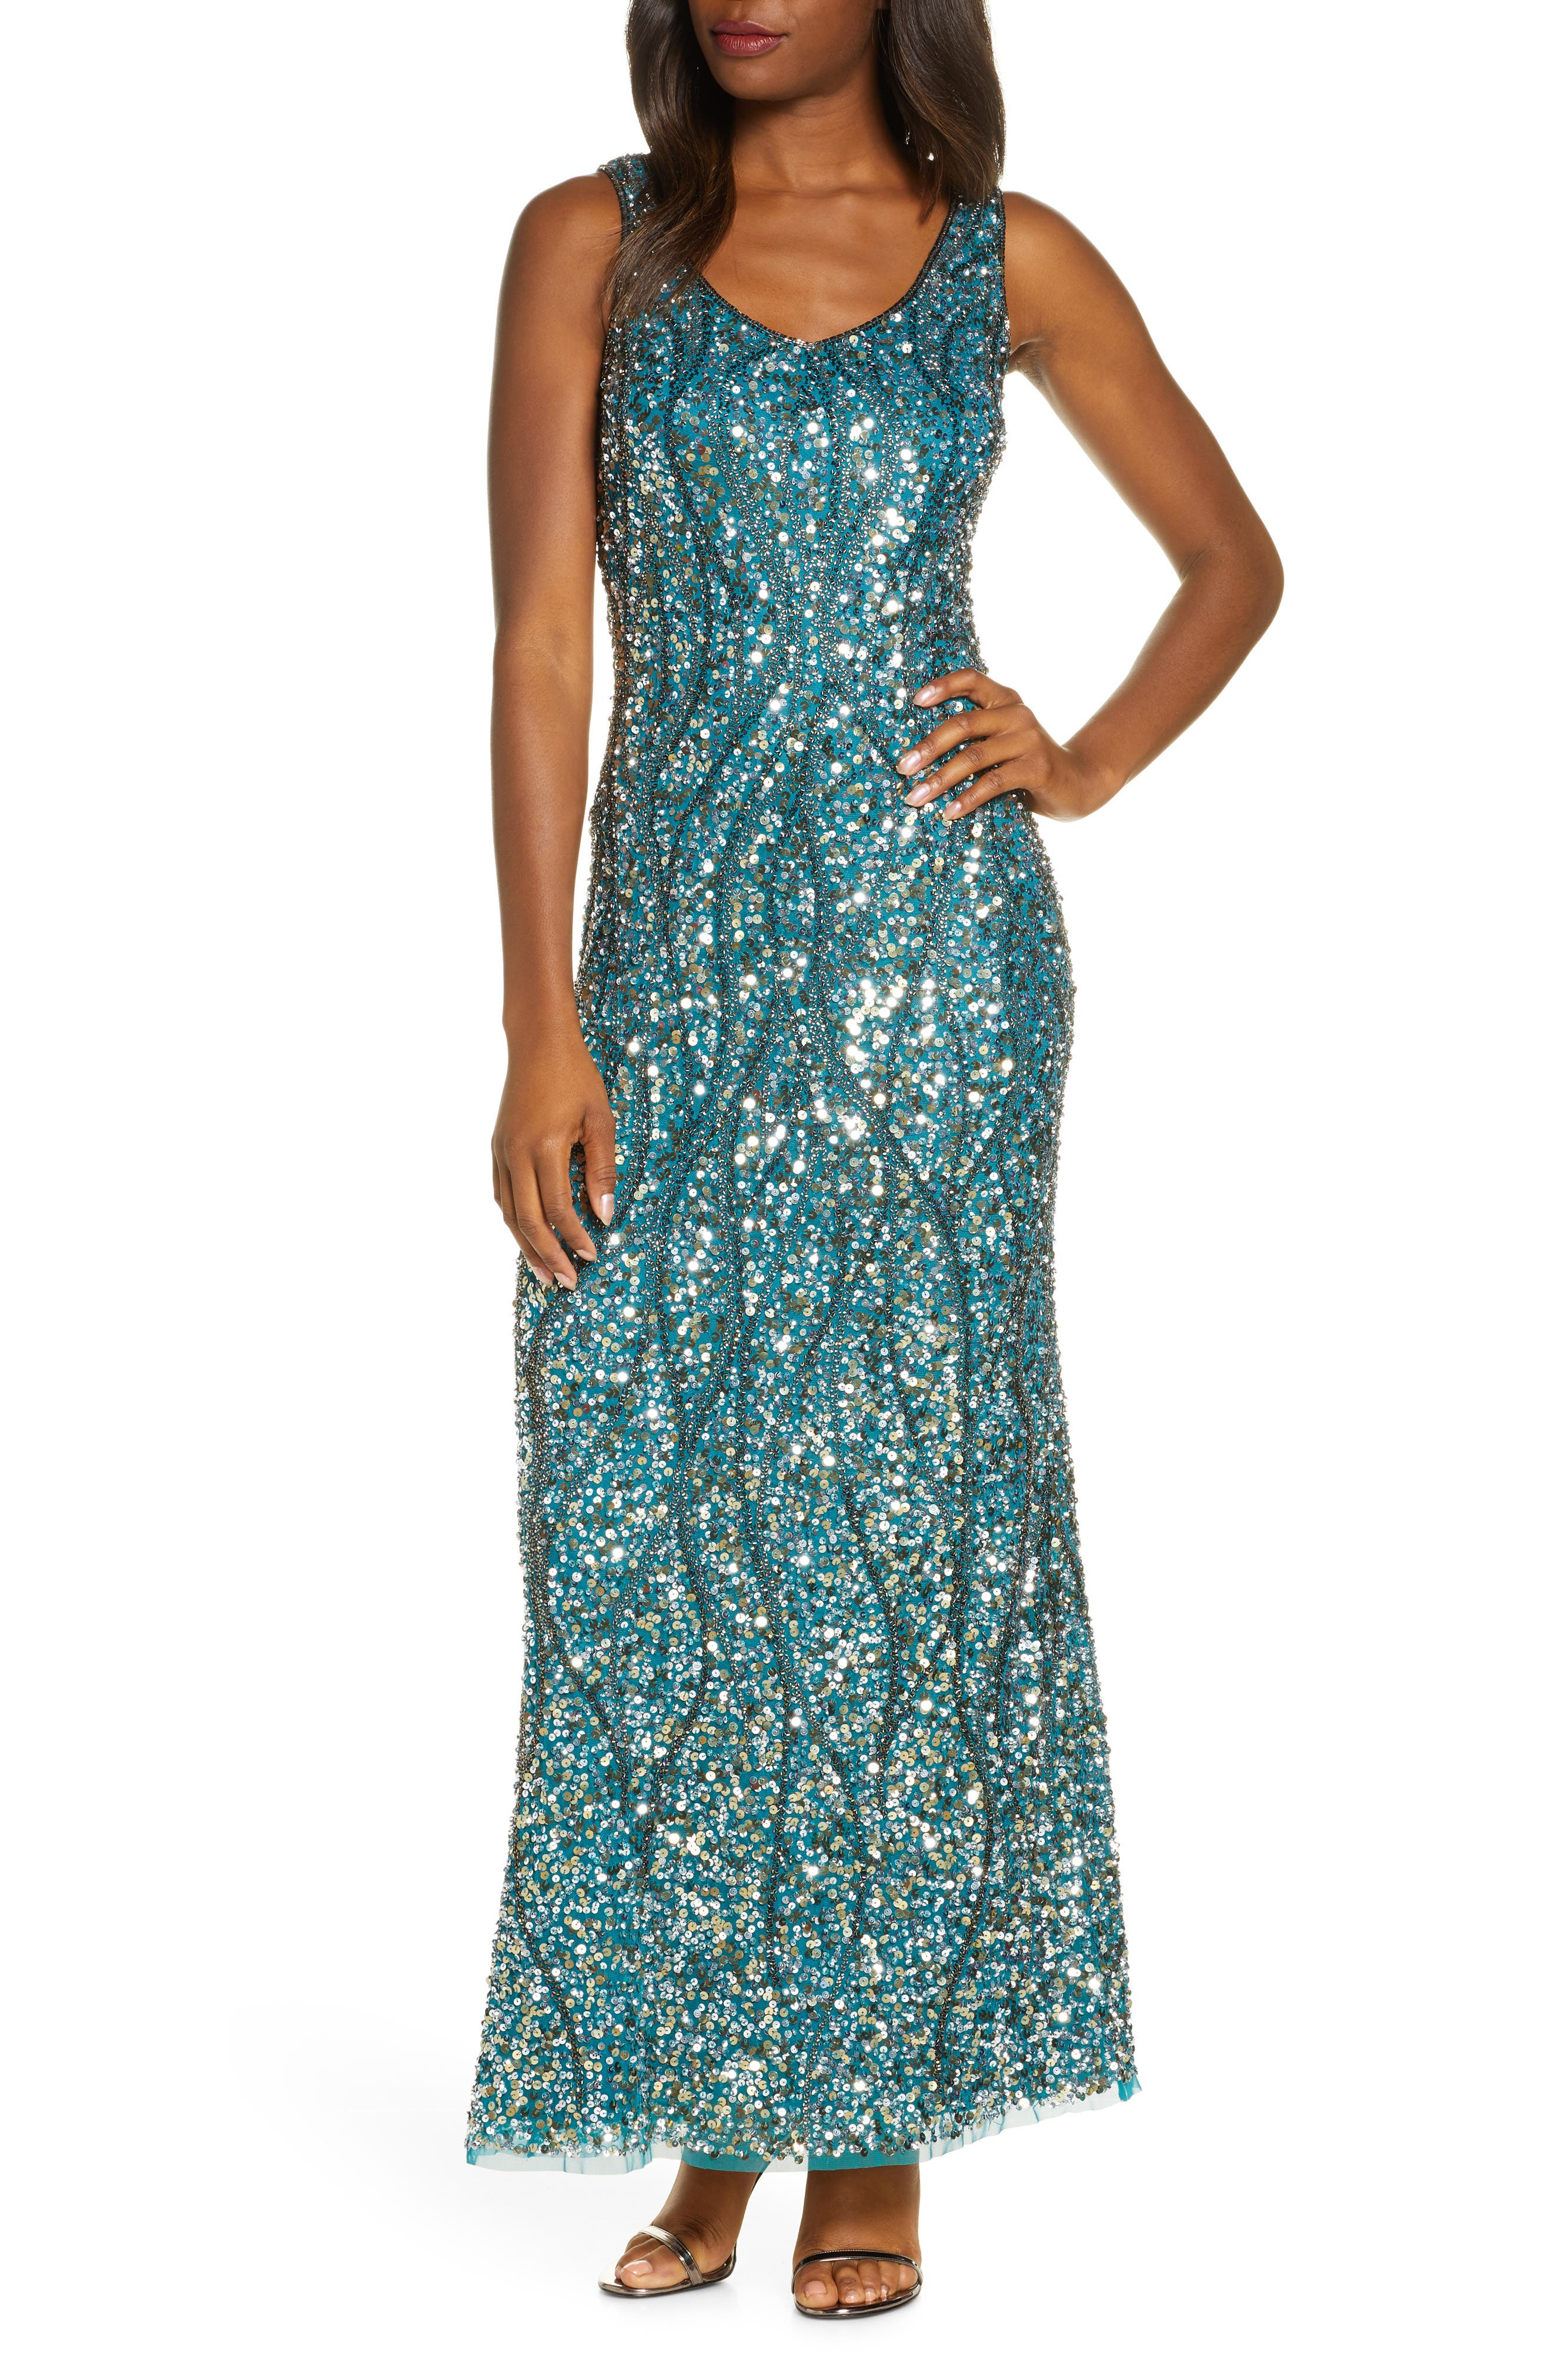 70s Prom, Formal, Evening, Party Dresses Womens Pisarro Nights Sequin  Bead Sleeveless Gown $258.00 AT vintagedancer.com